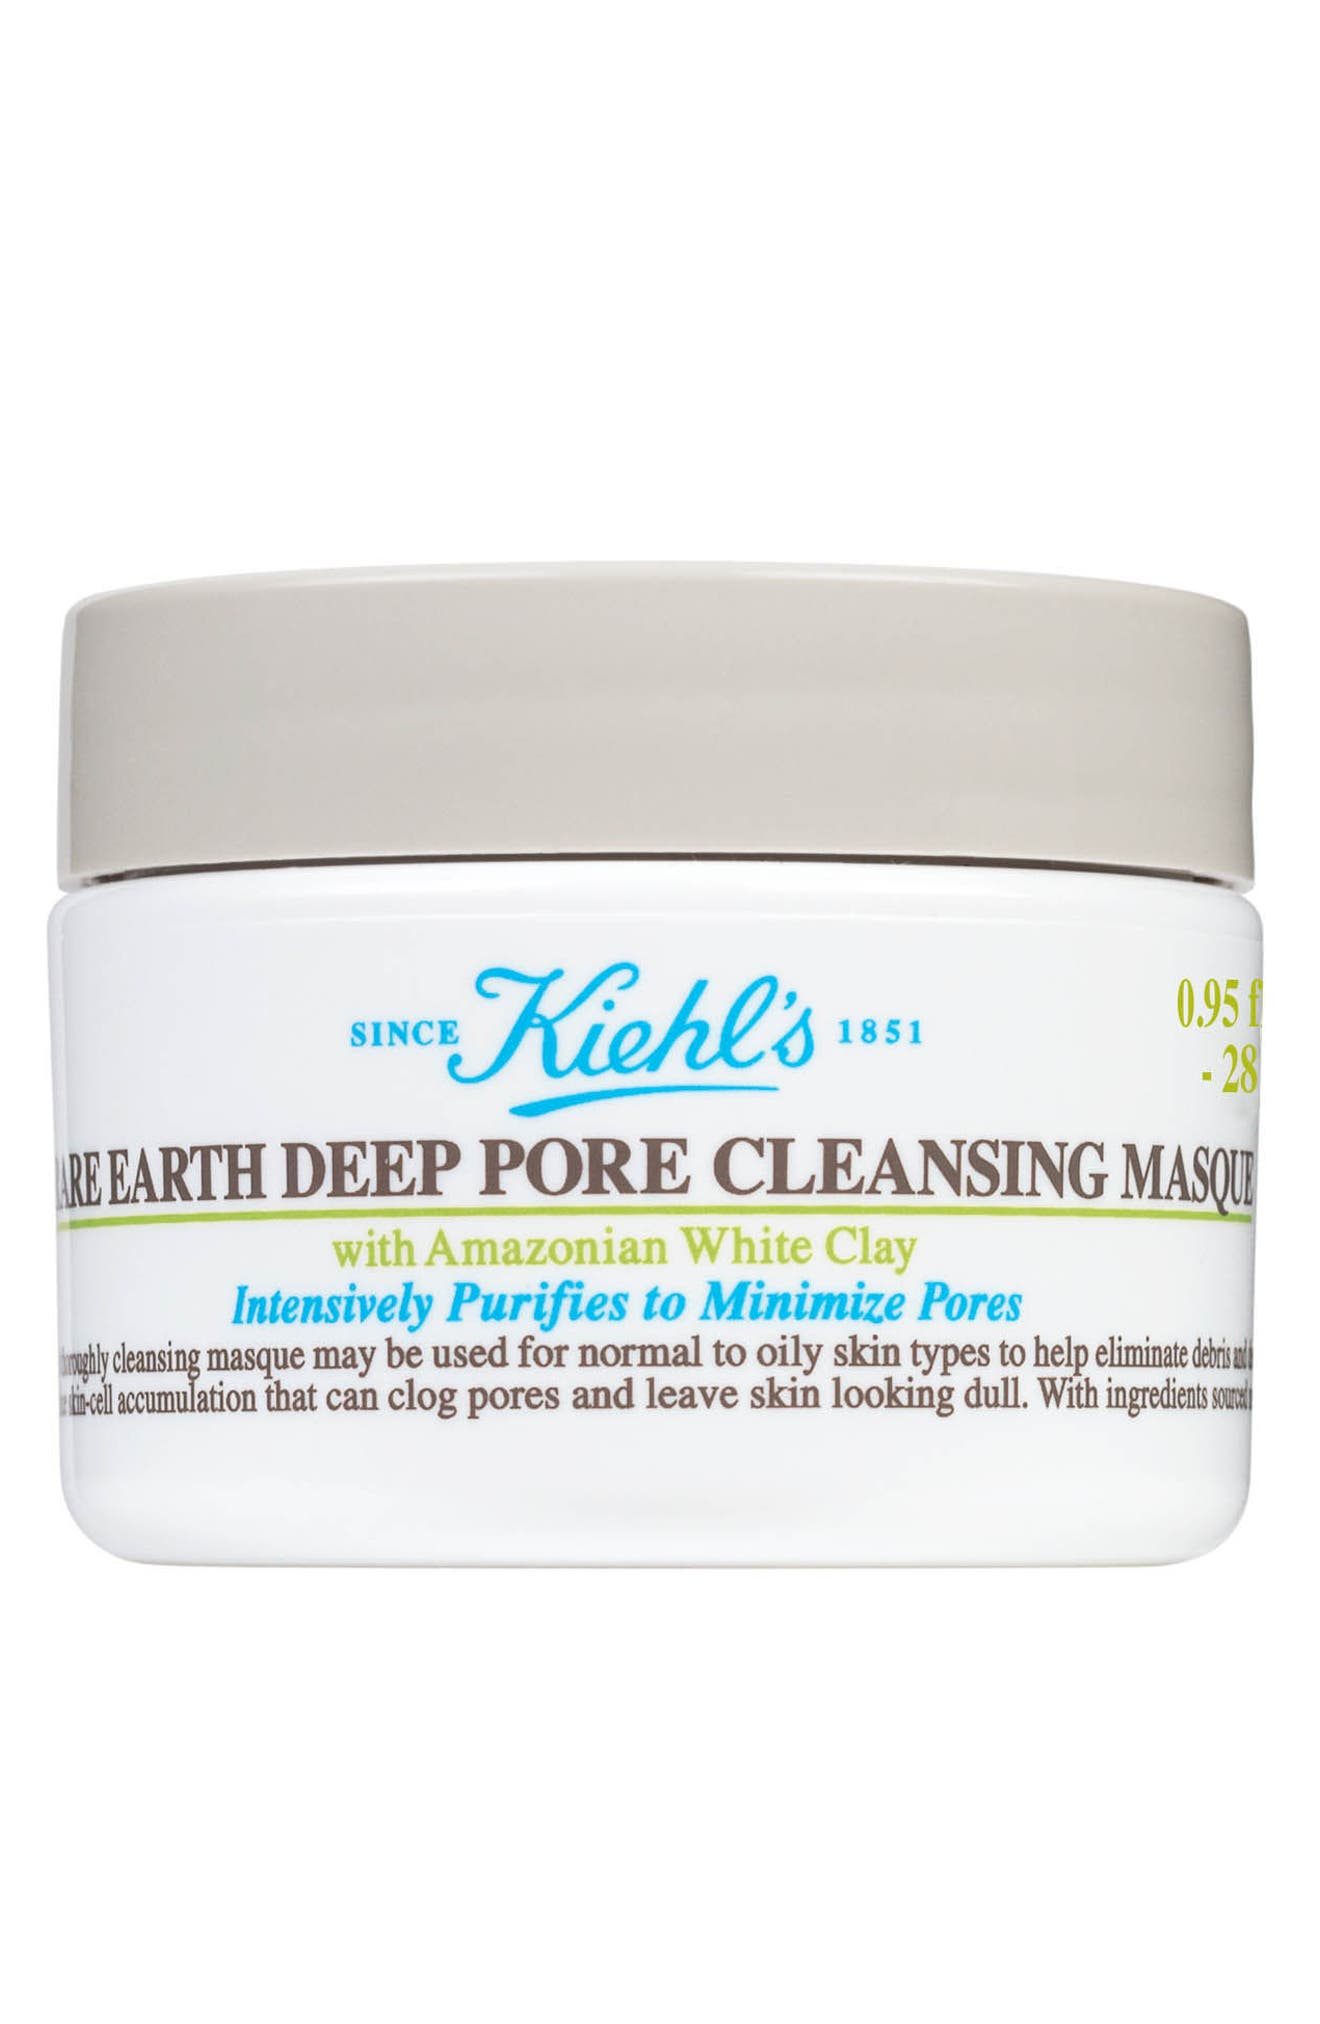 Rare Earth Deep Pore Cleansing Masque,                             Main thumbnail 1, color,                             No Color